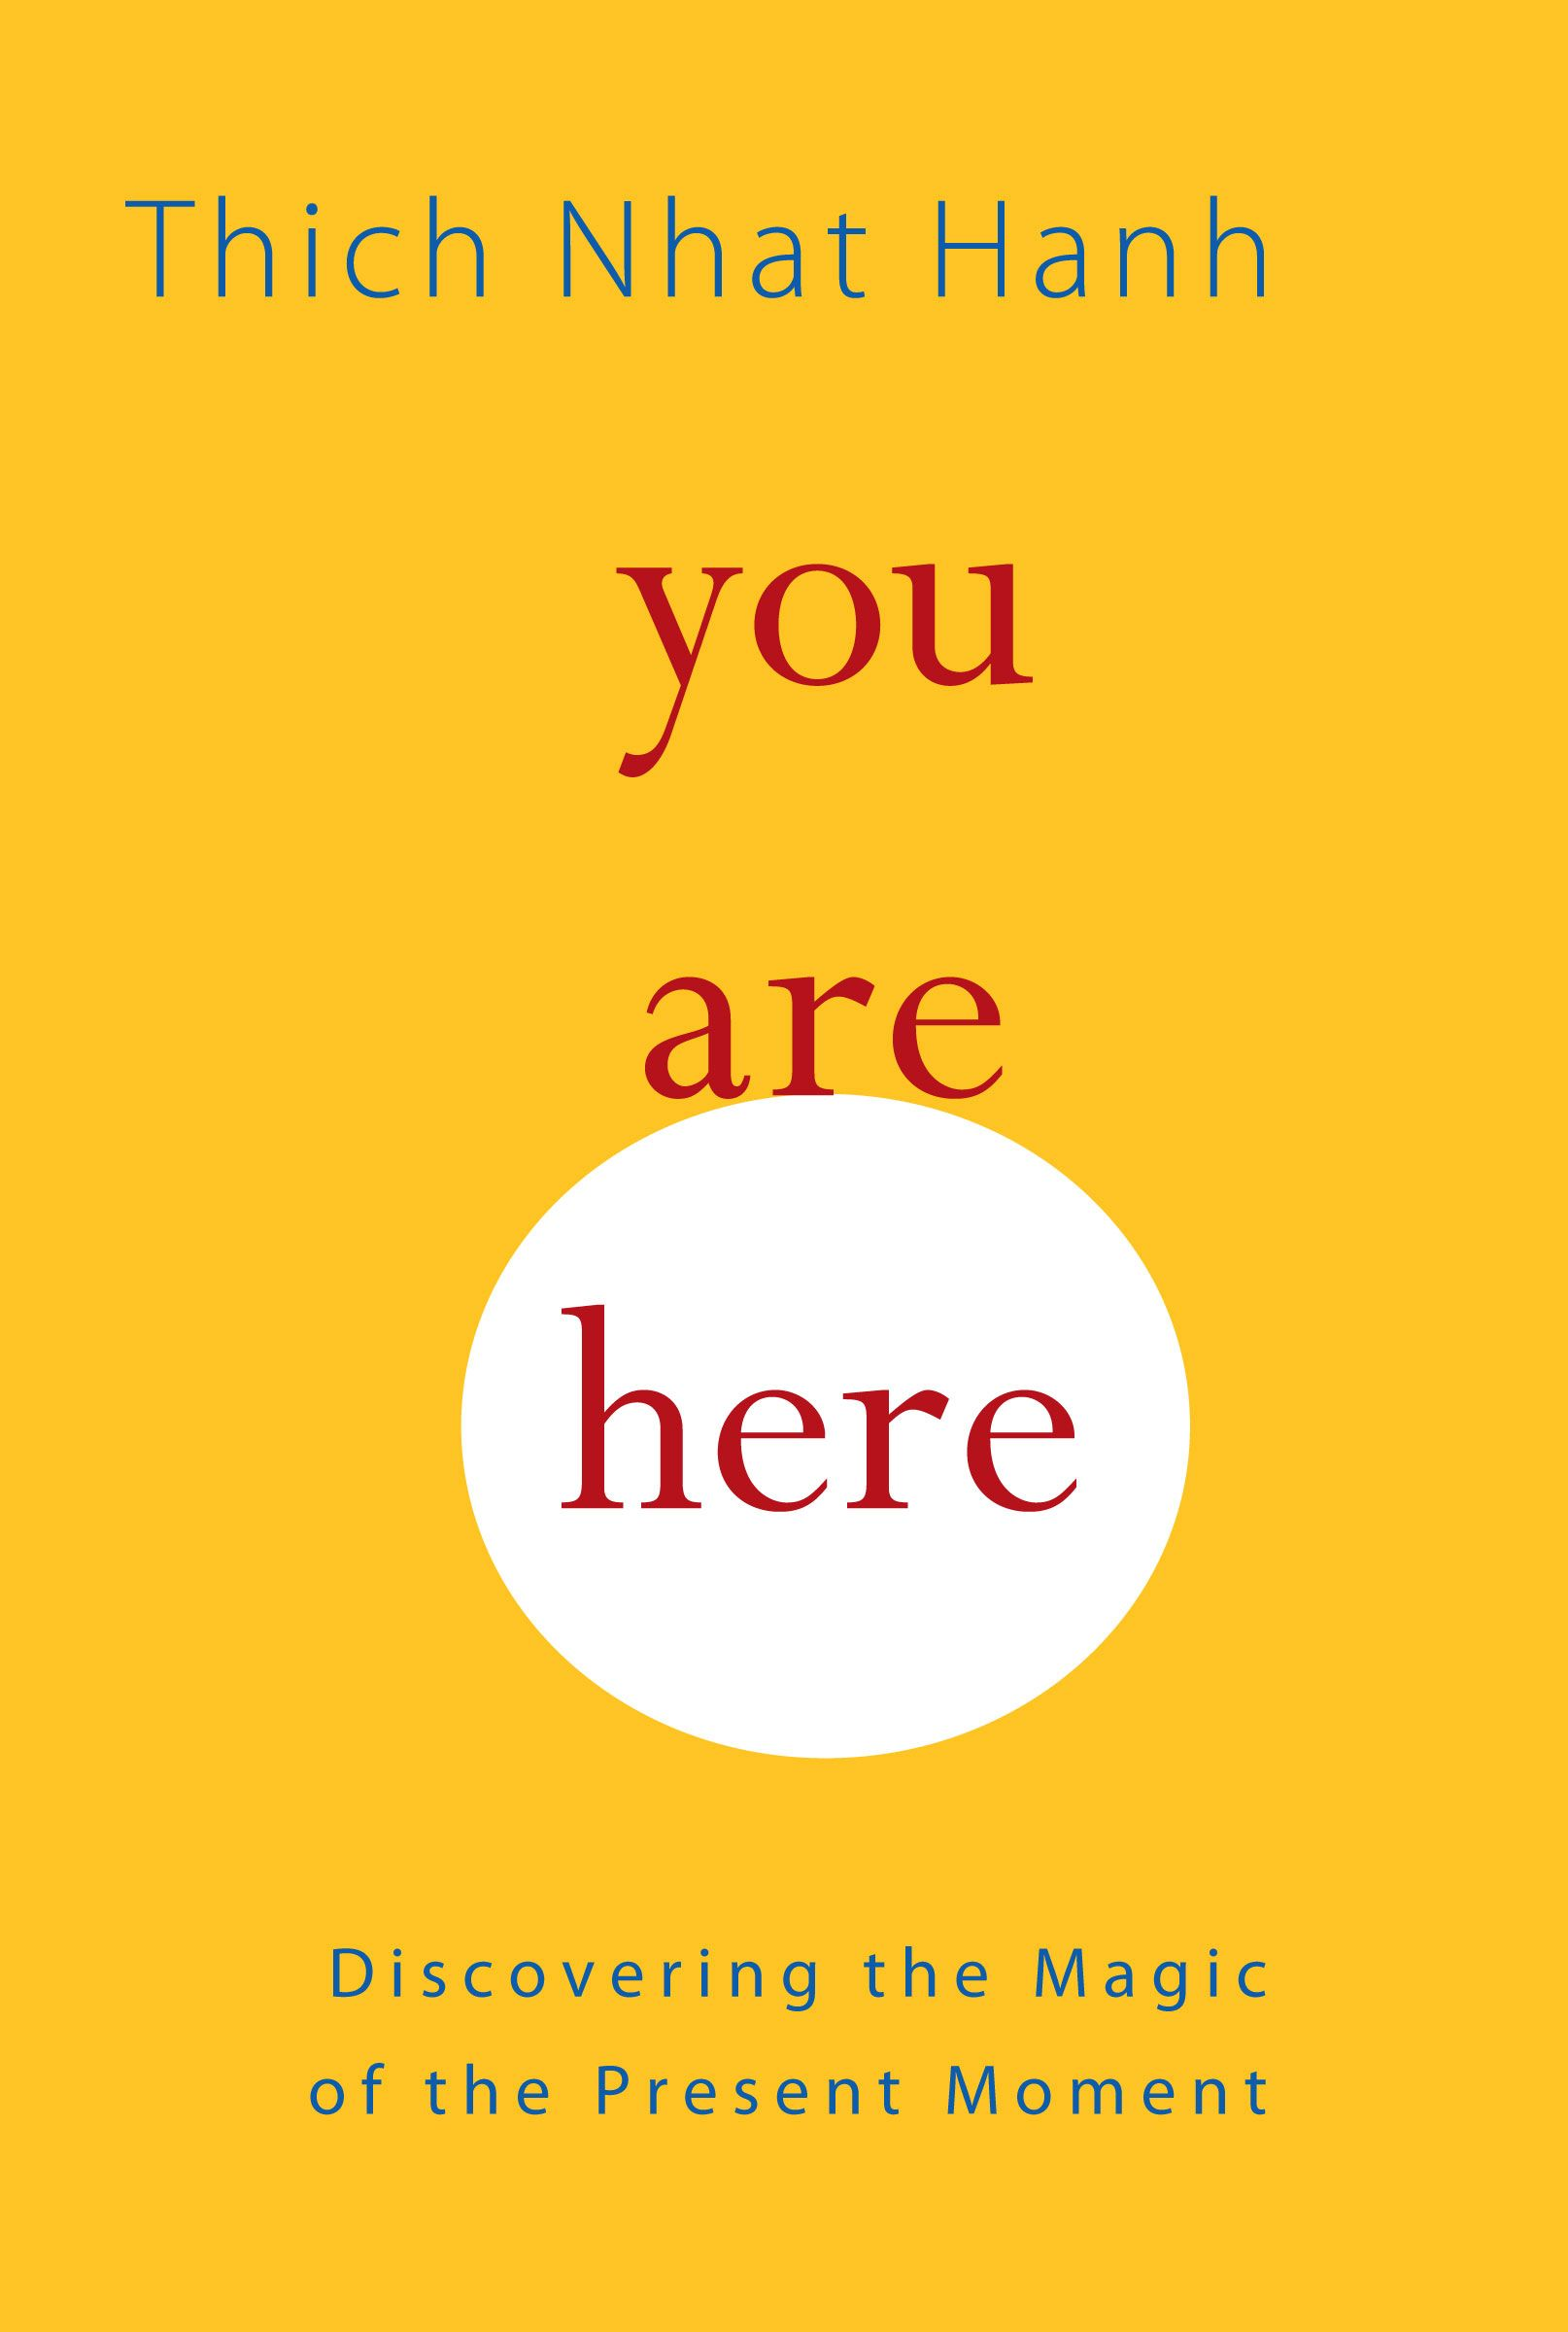 You Are Here By: Thich Nhat Hanh